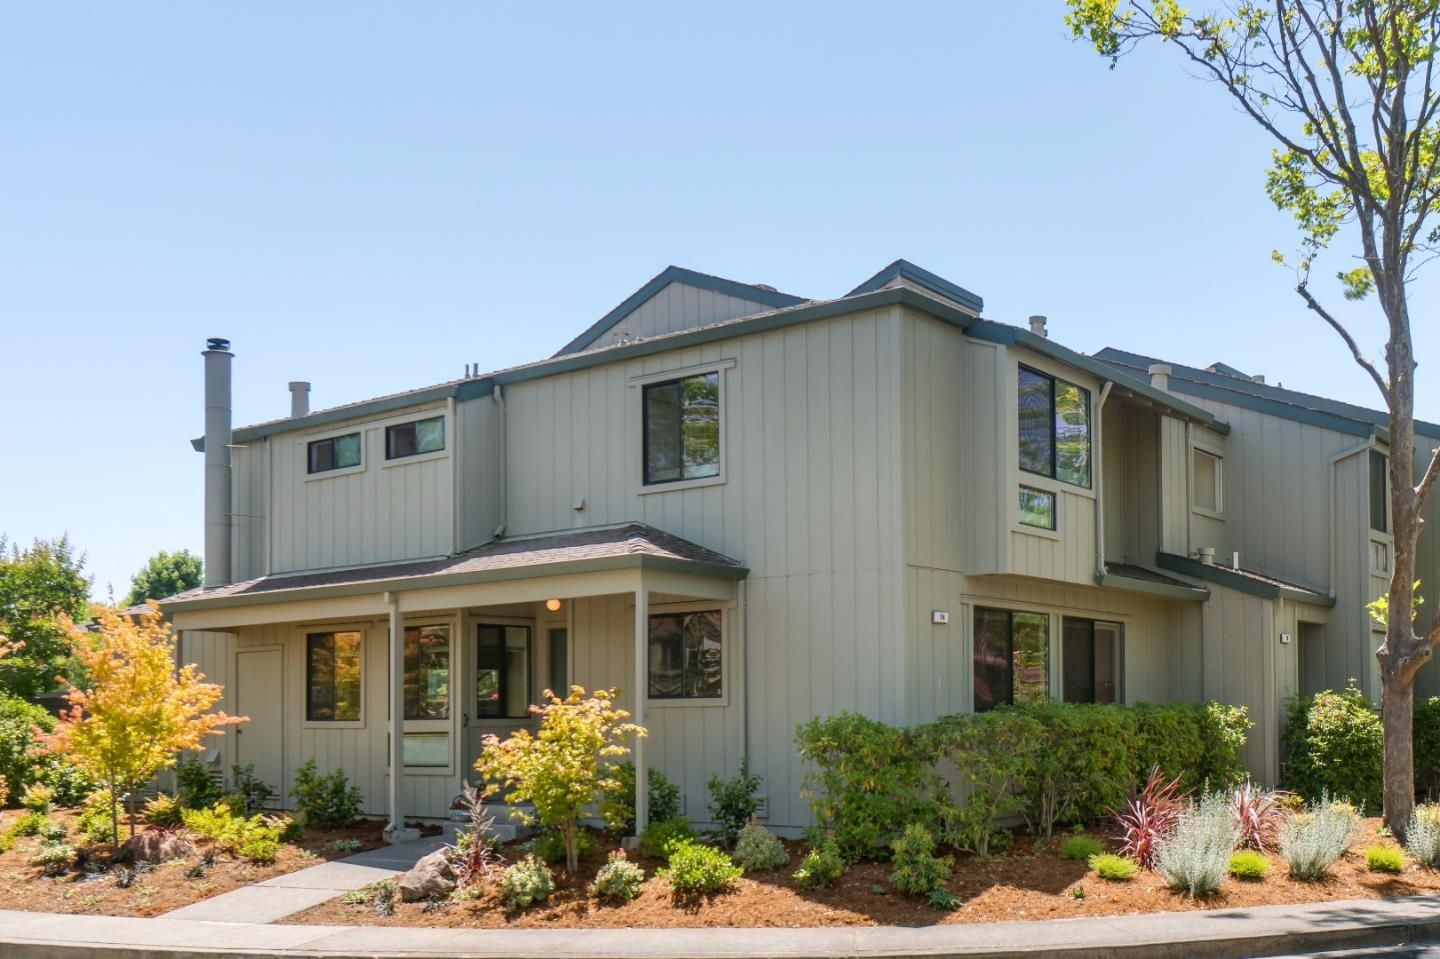 Condominium for Sale at 74 Sandpiper Circle Corte Madera, California 94925 United States